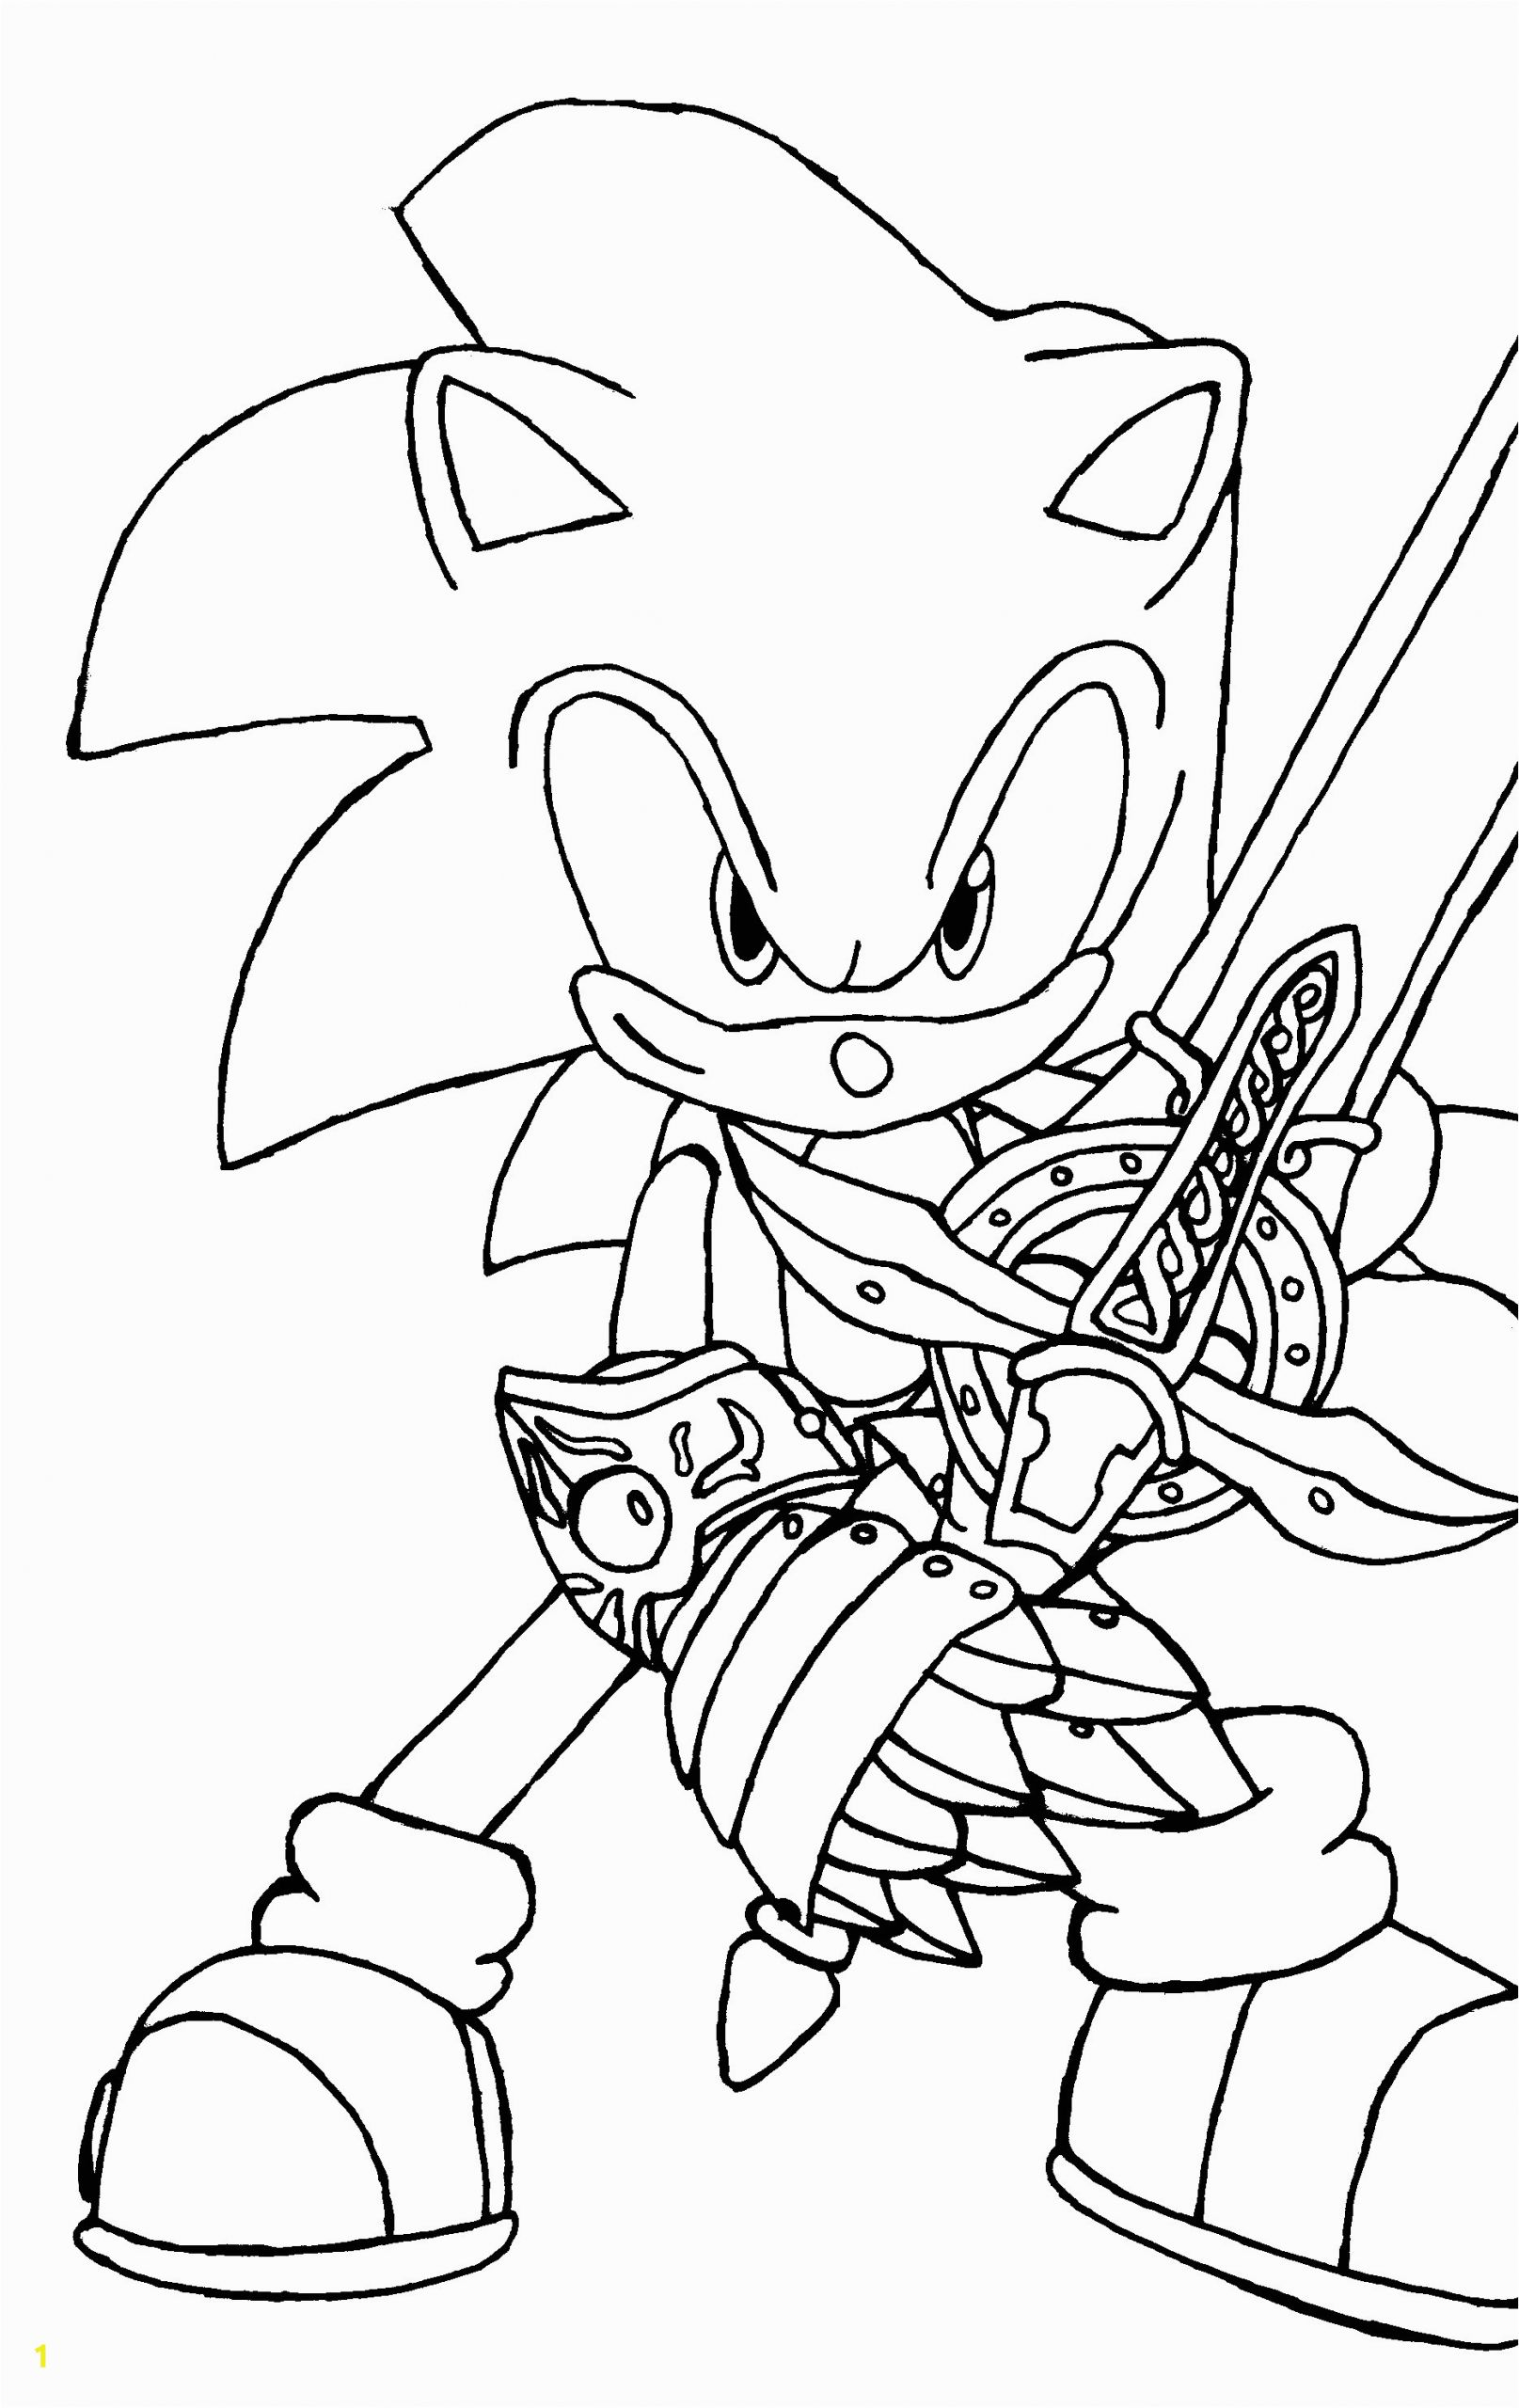 sonic the werehog coloring pages to print